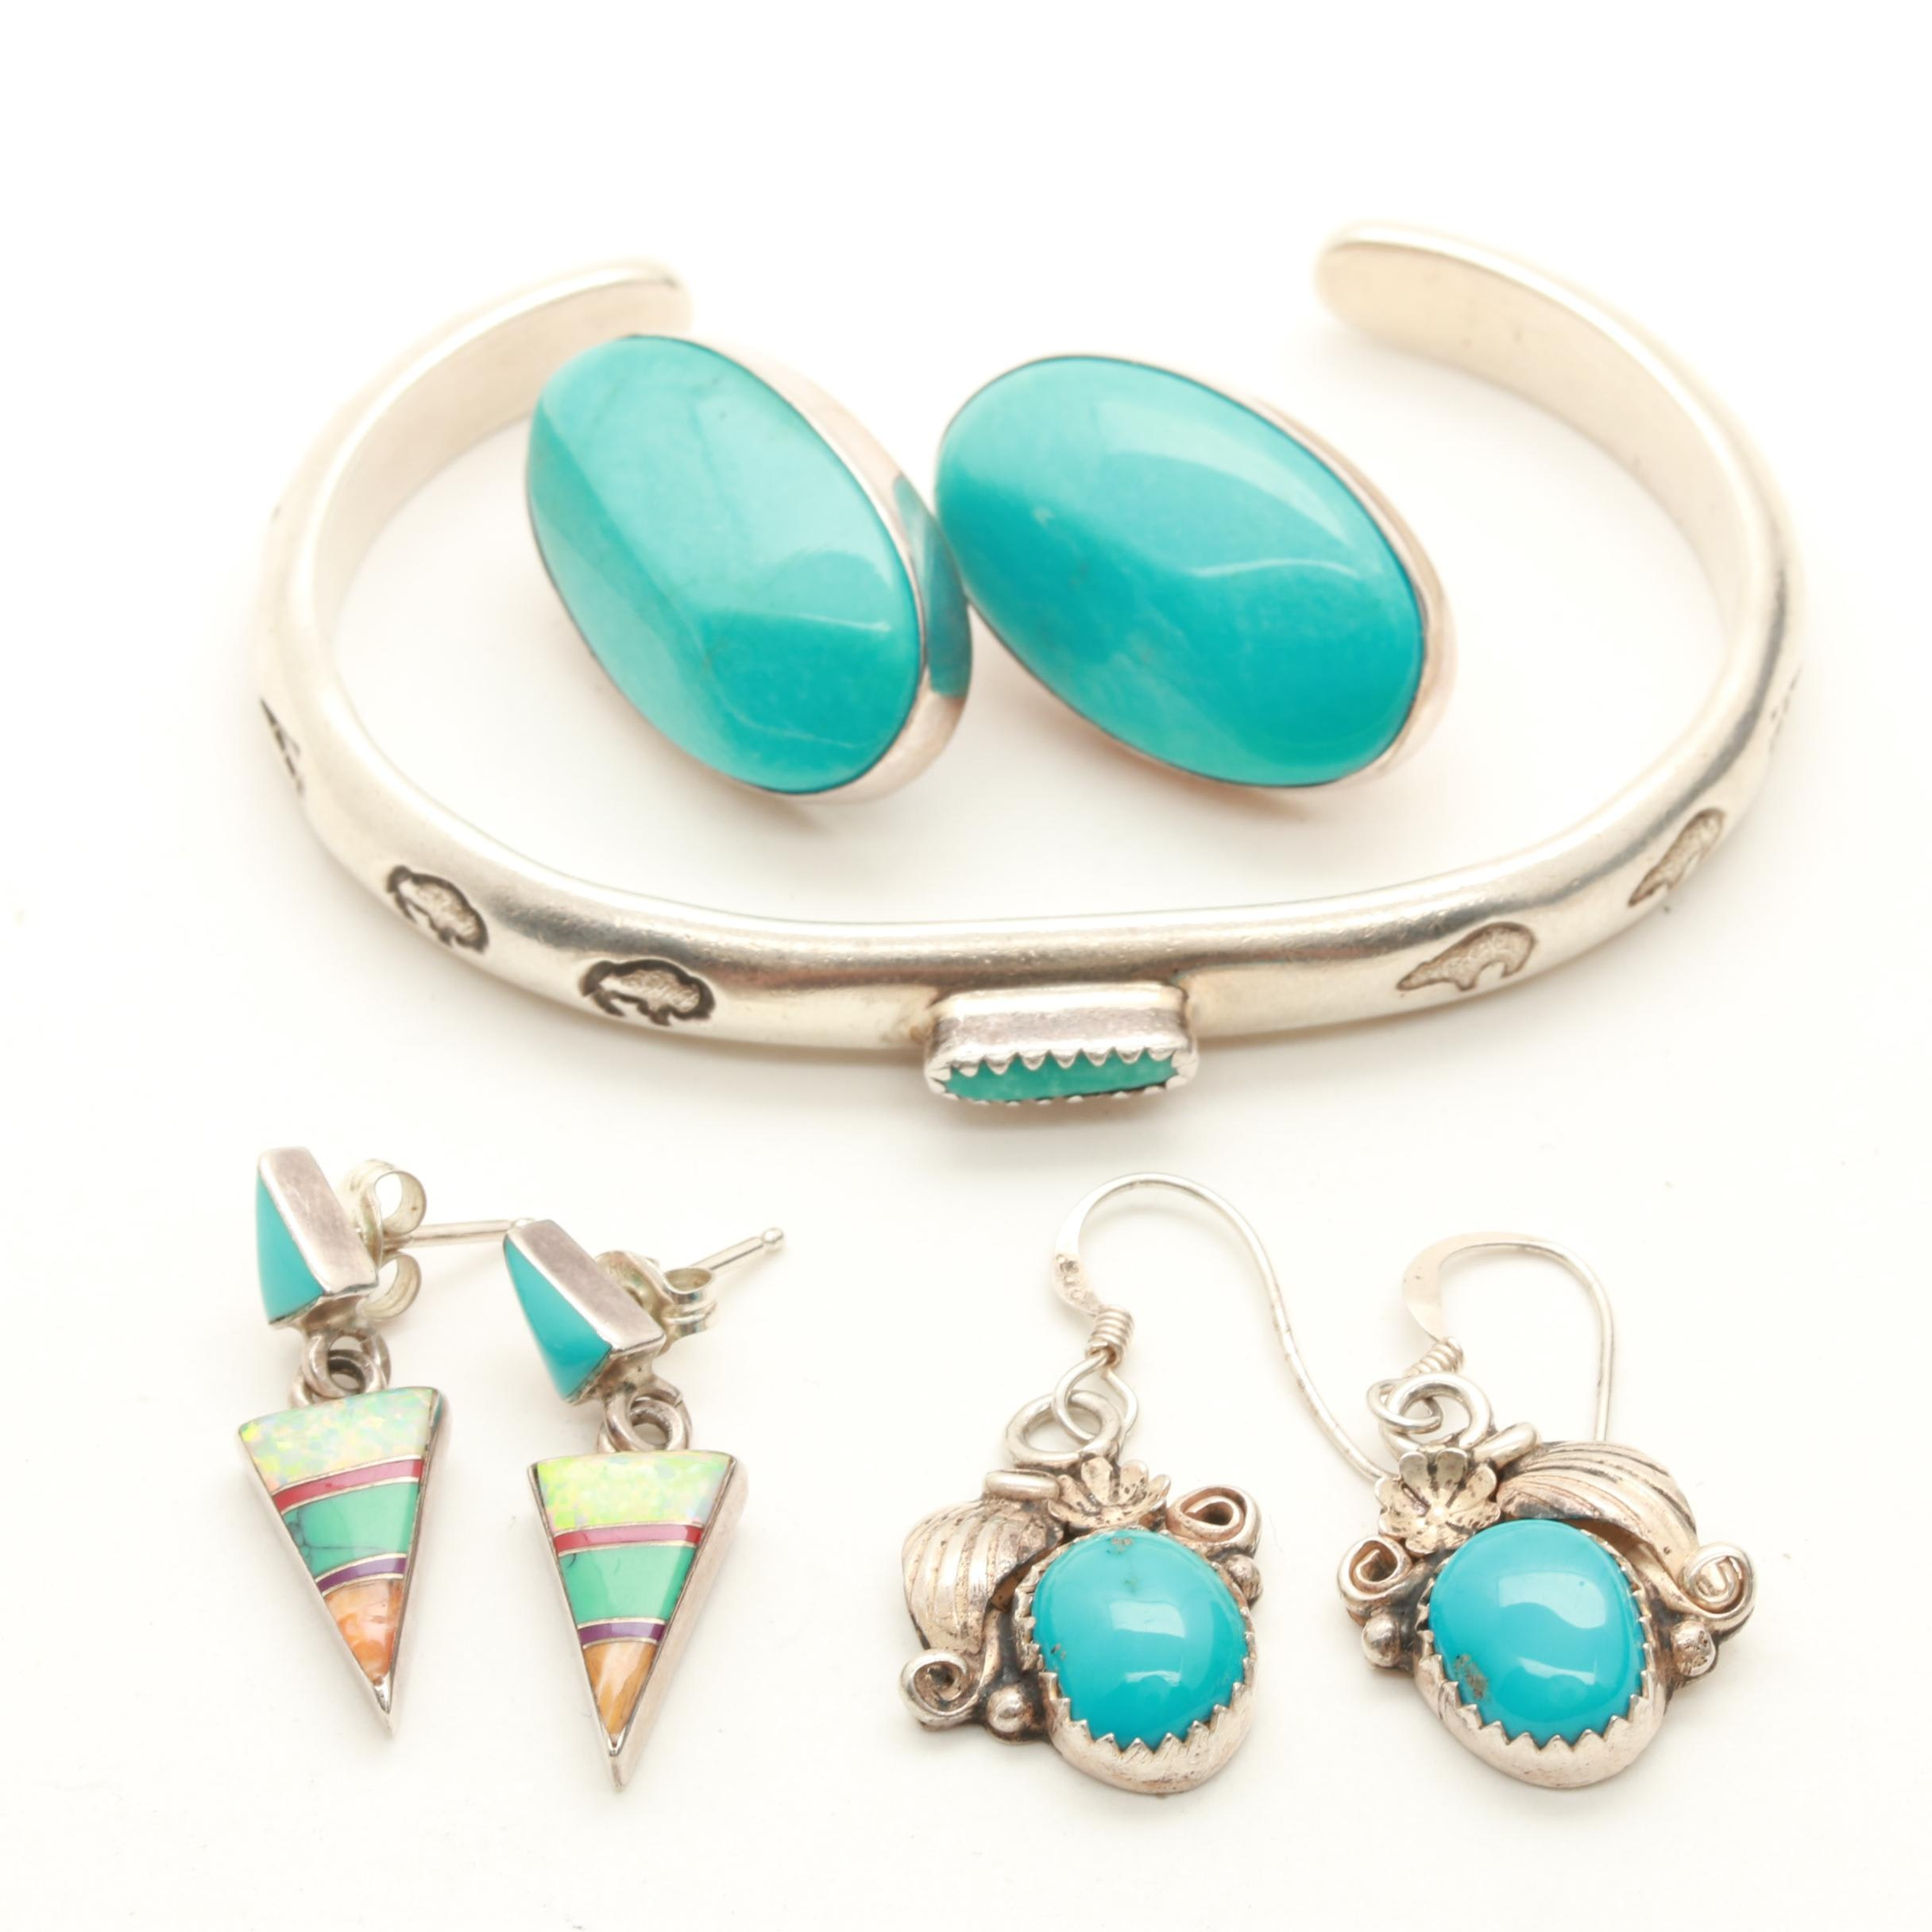 Southwestern Style Sterling Silver Cuff and Earrings Including Turquoise